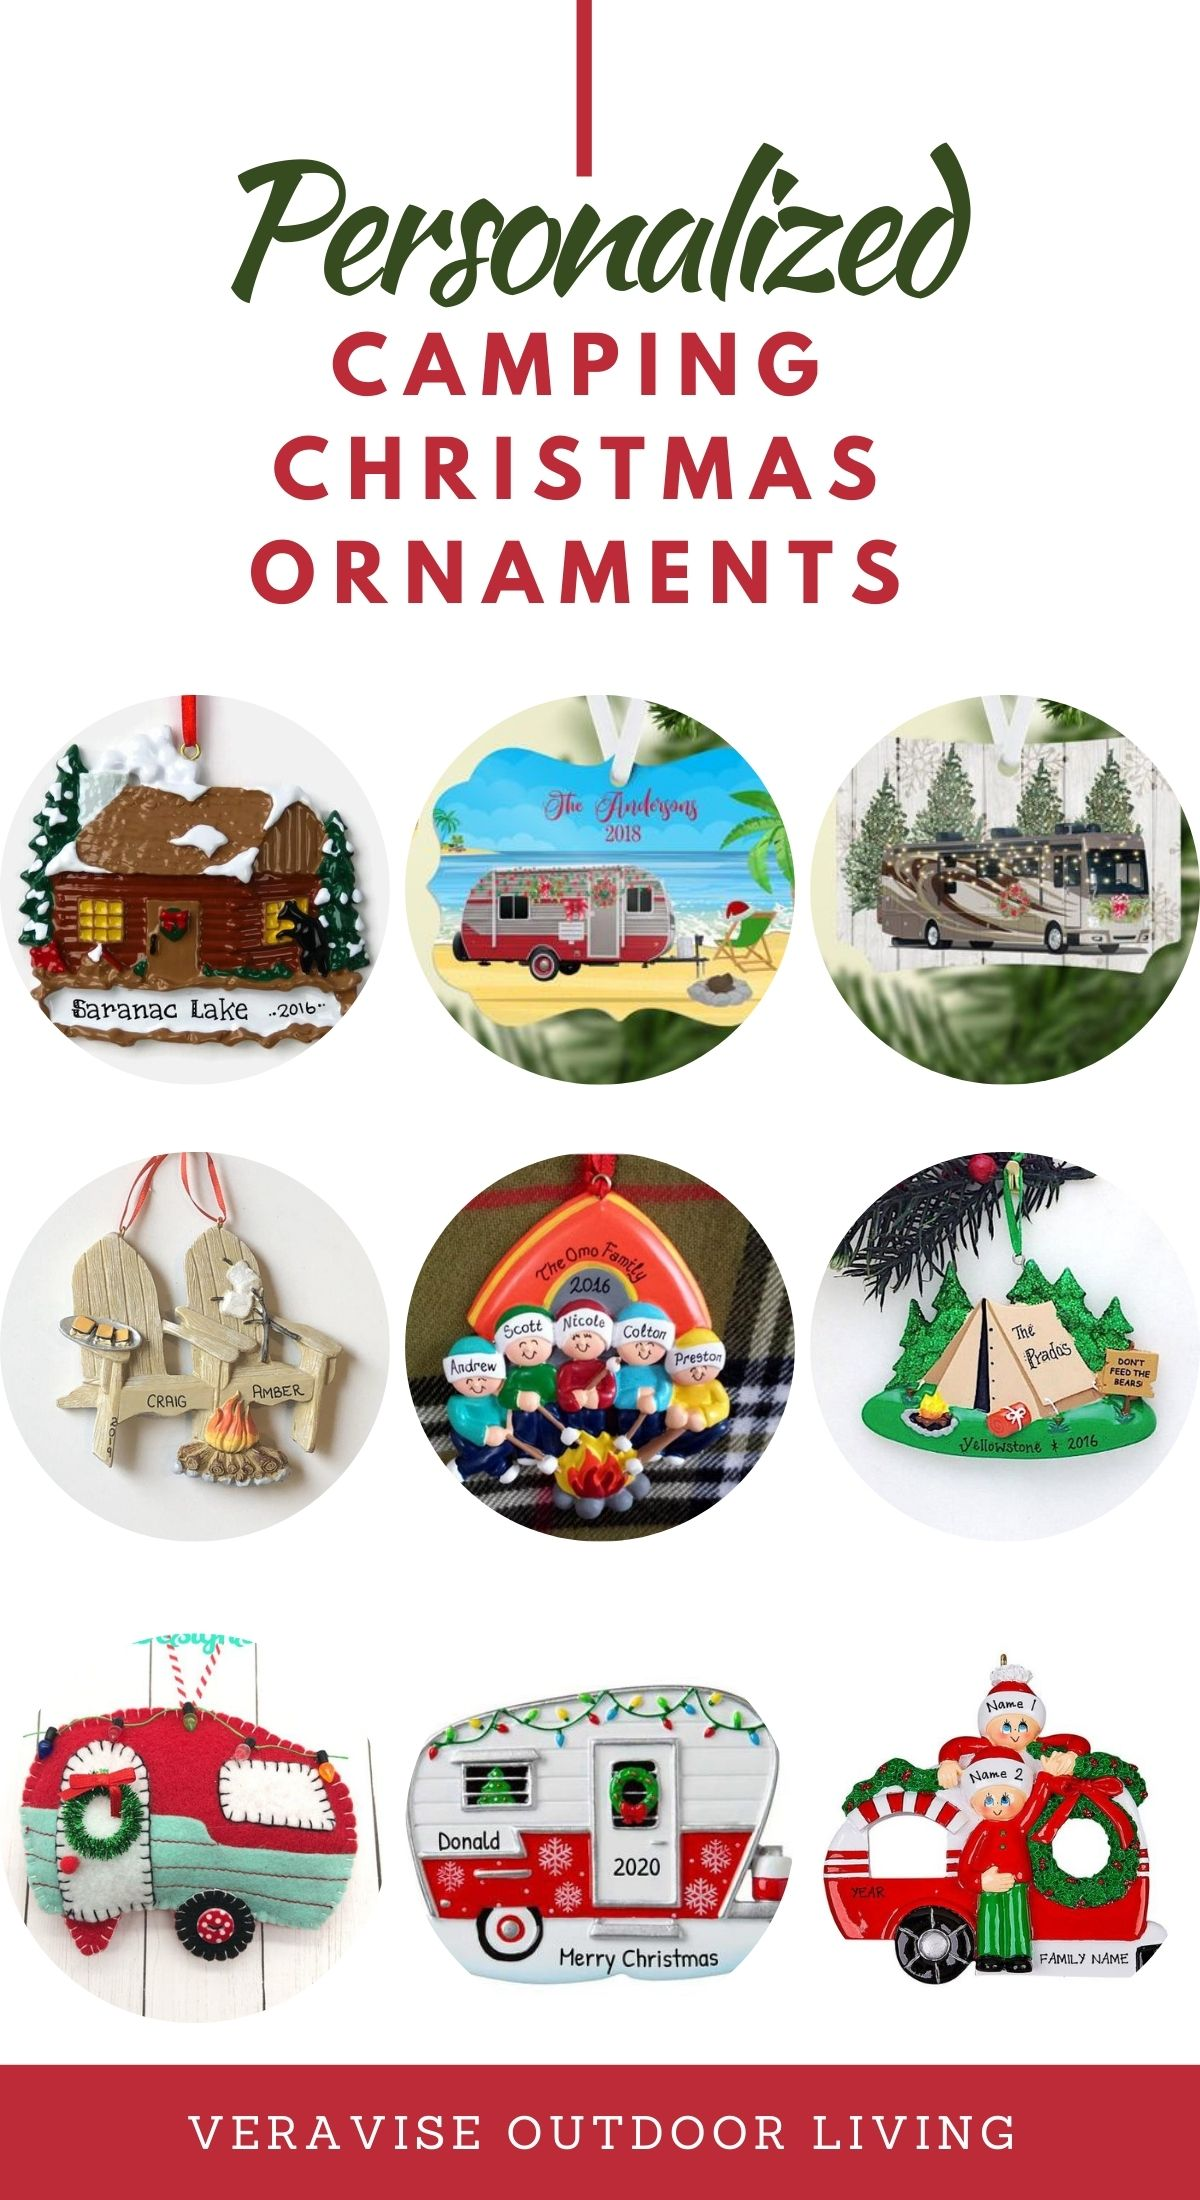 Personalized Camping Ornaments